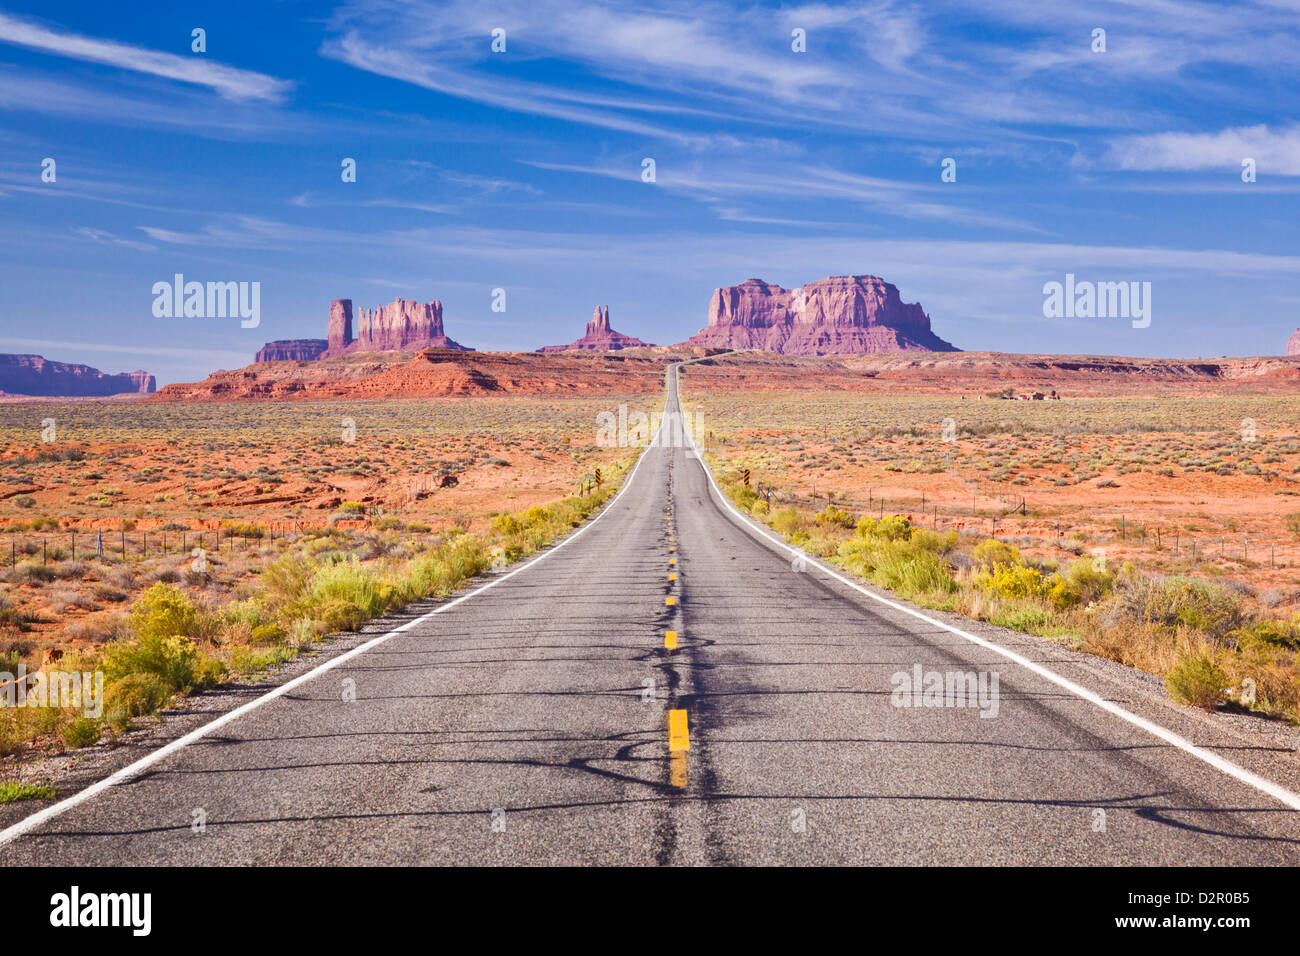 Empty Road, Highway 163, Monument Valley, Utah, United States of America, North America - Stock Image